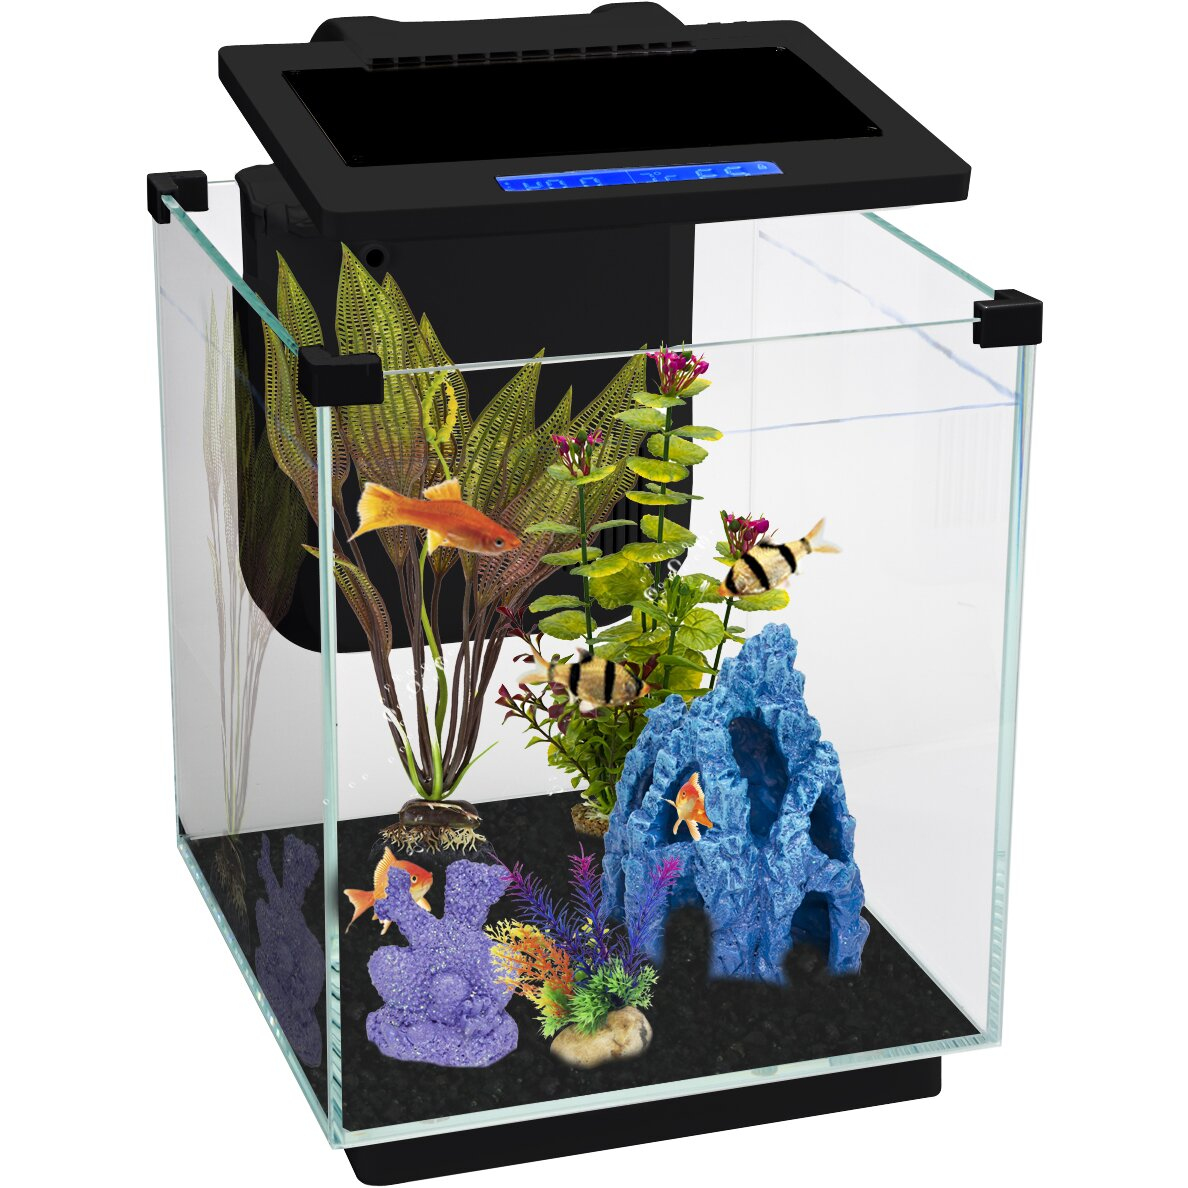 Fish aquarium price india - Fish Tank Aquarium Castle Hill